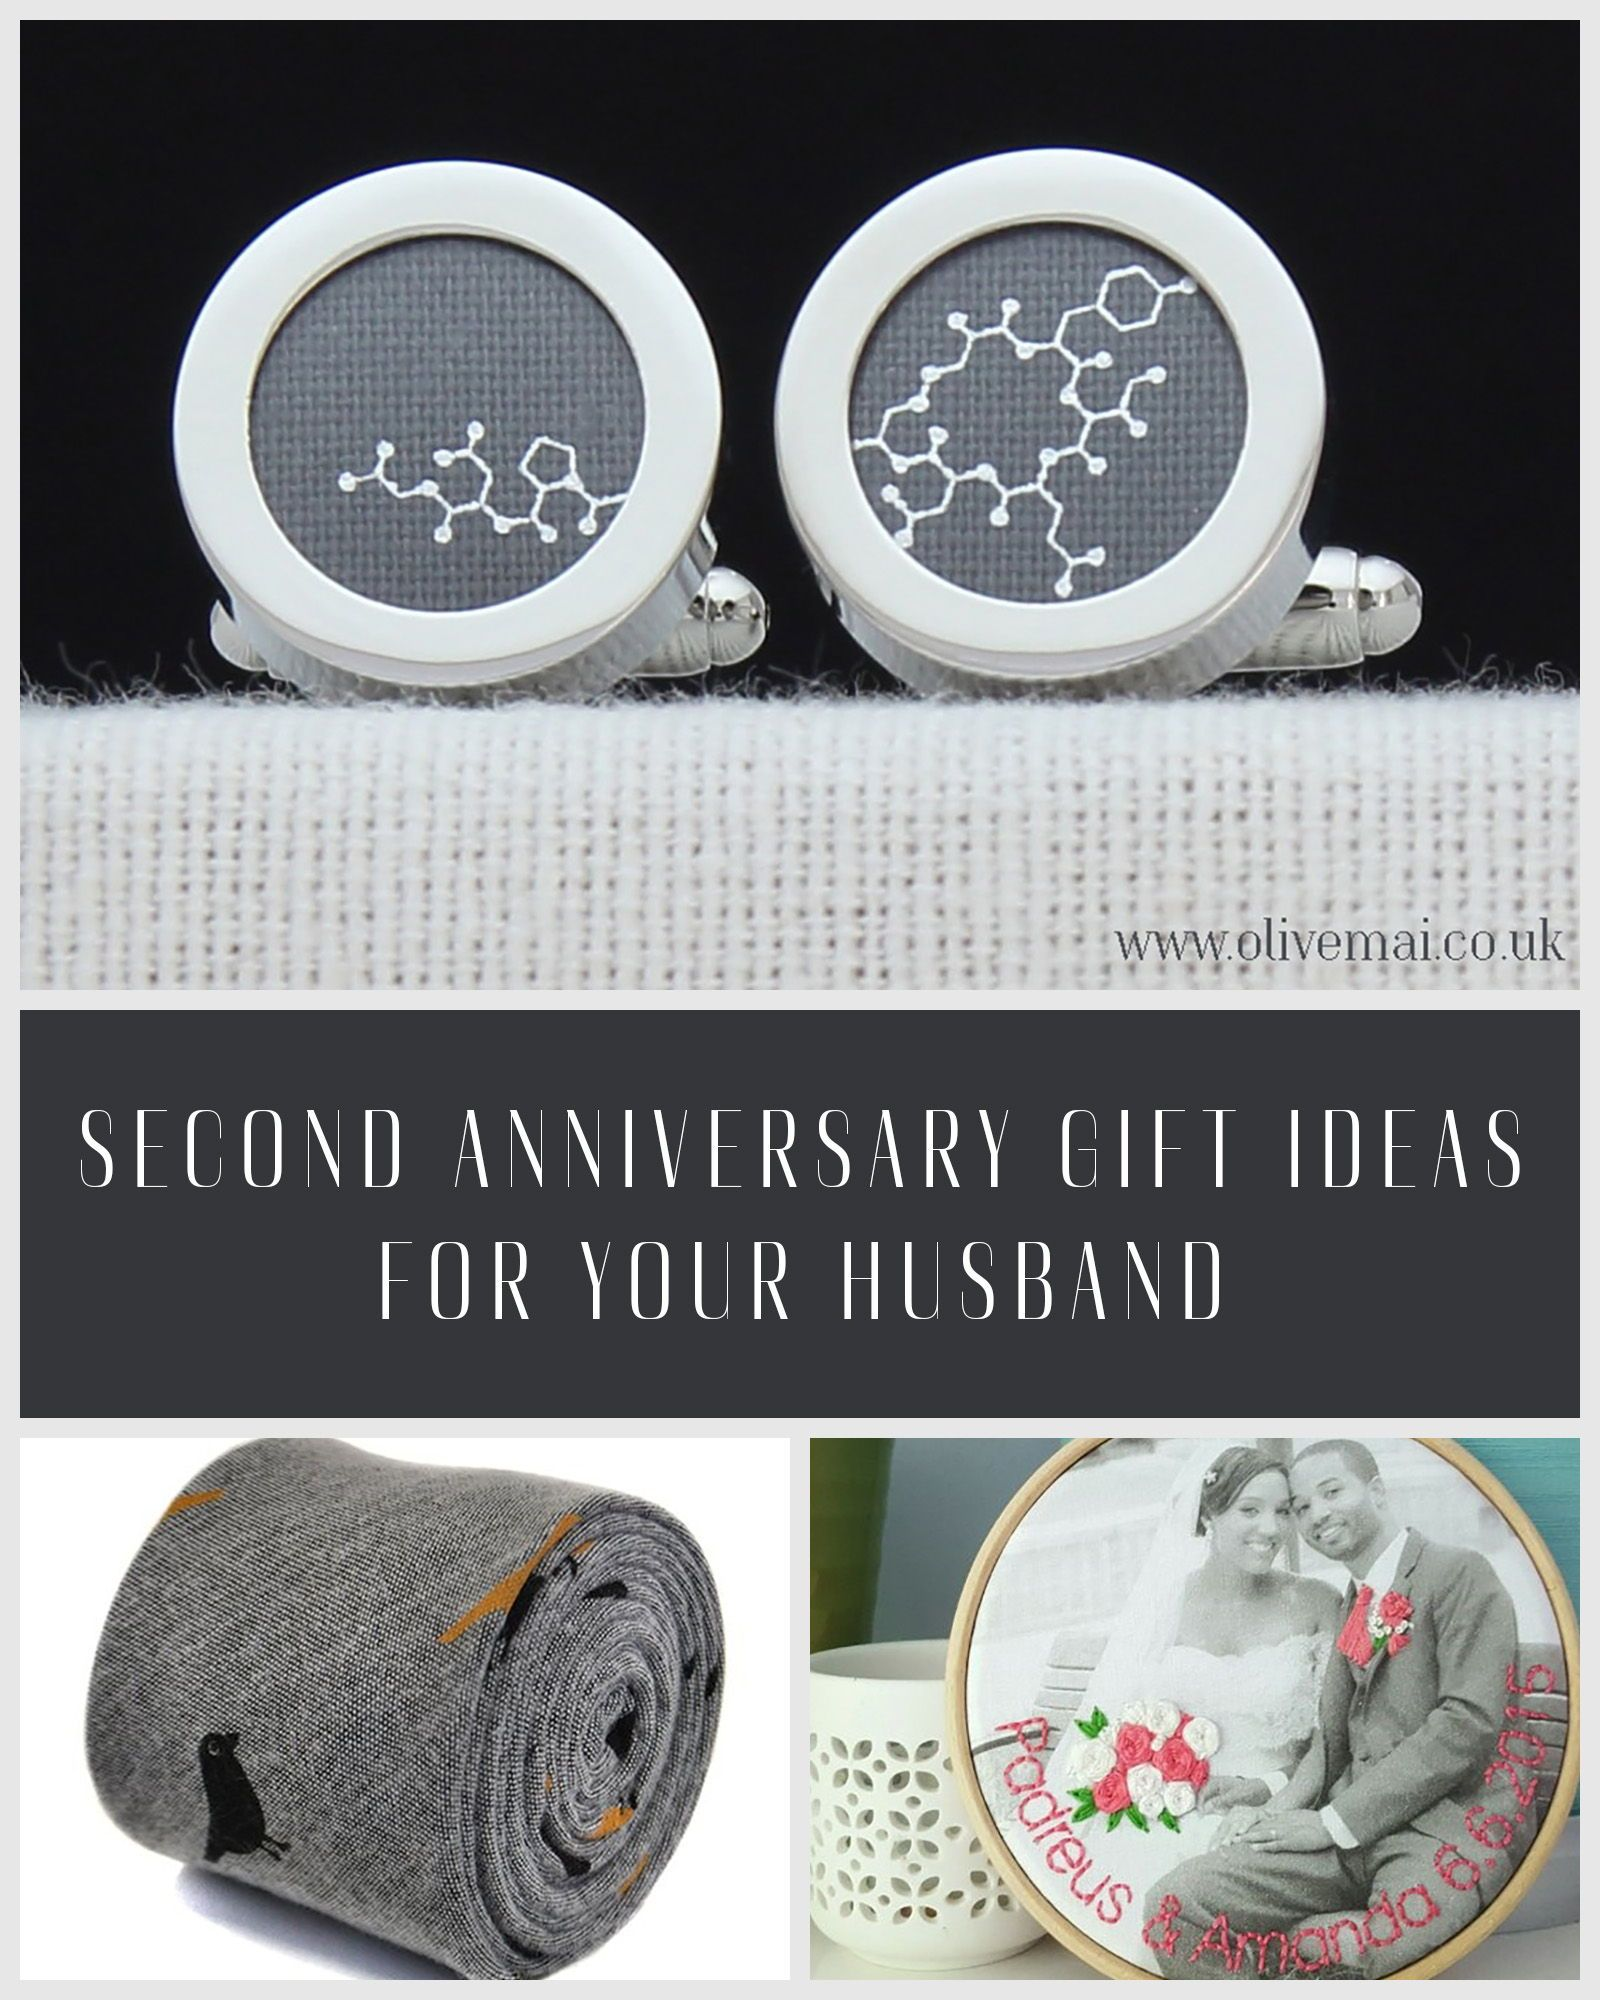 2nd Wedding Anniversary Gifts For Men: Second Anniversary Gift Ideas For Your Husband